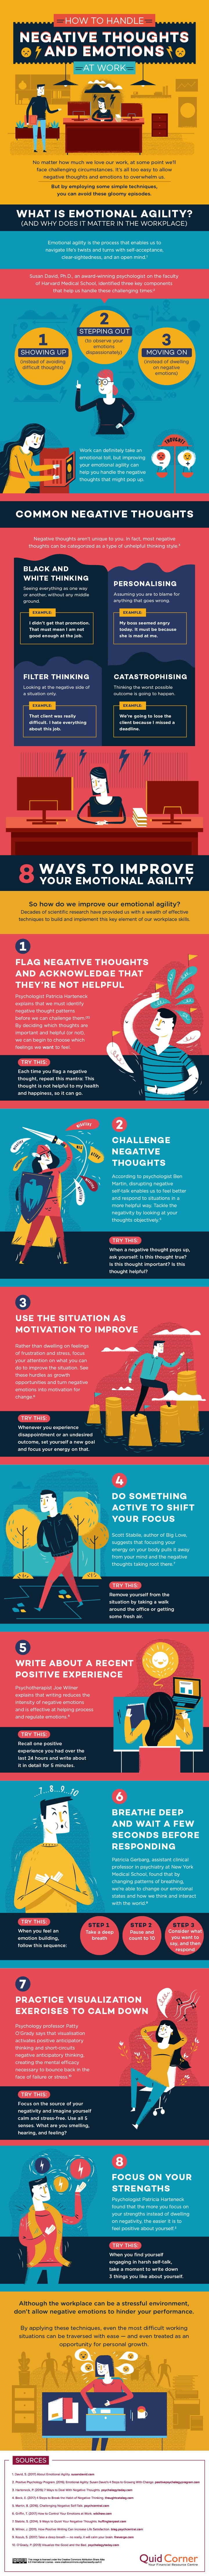 "No matter how much you love your job (or not!) there will be occasions when things get challenging. Your ability to develop ""emotional agility"" is what will help you to not only stay sane, but to thrive as a professional in any environment. Here are 8 simple tips to help you whenever you're feeling frustrated at work..."